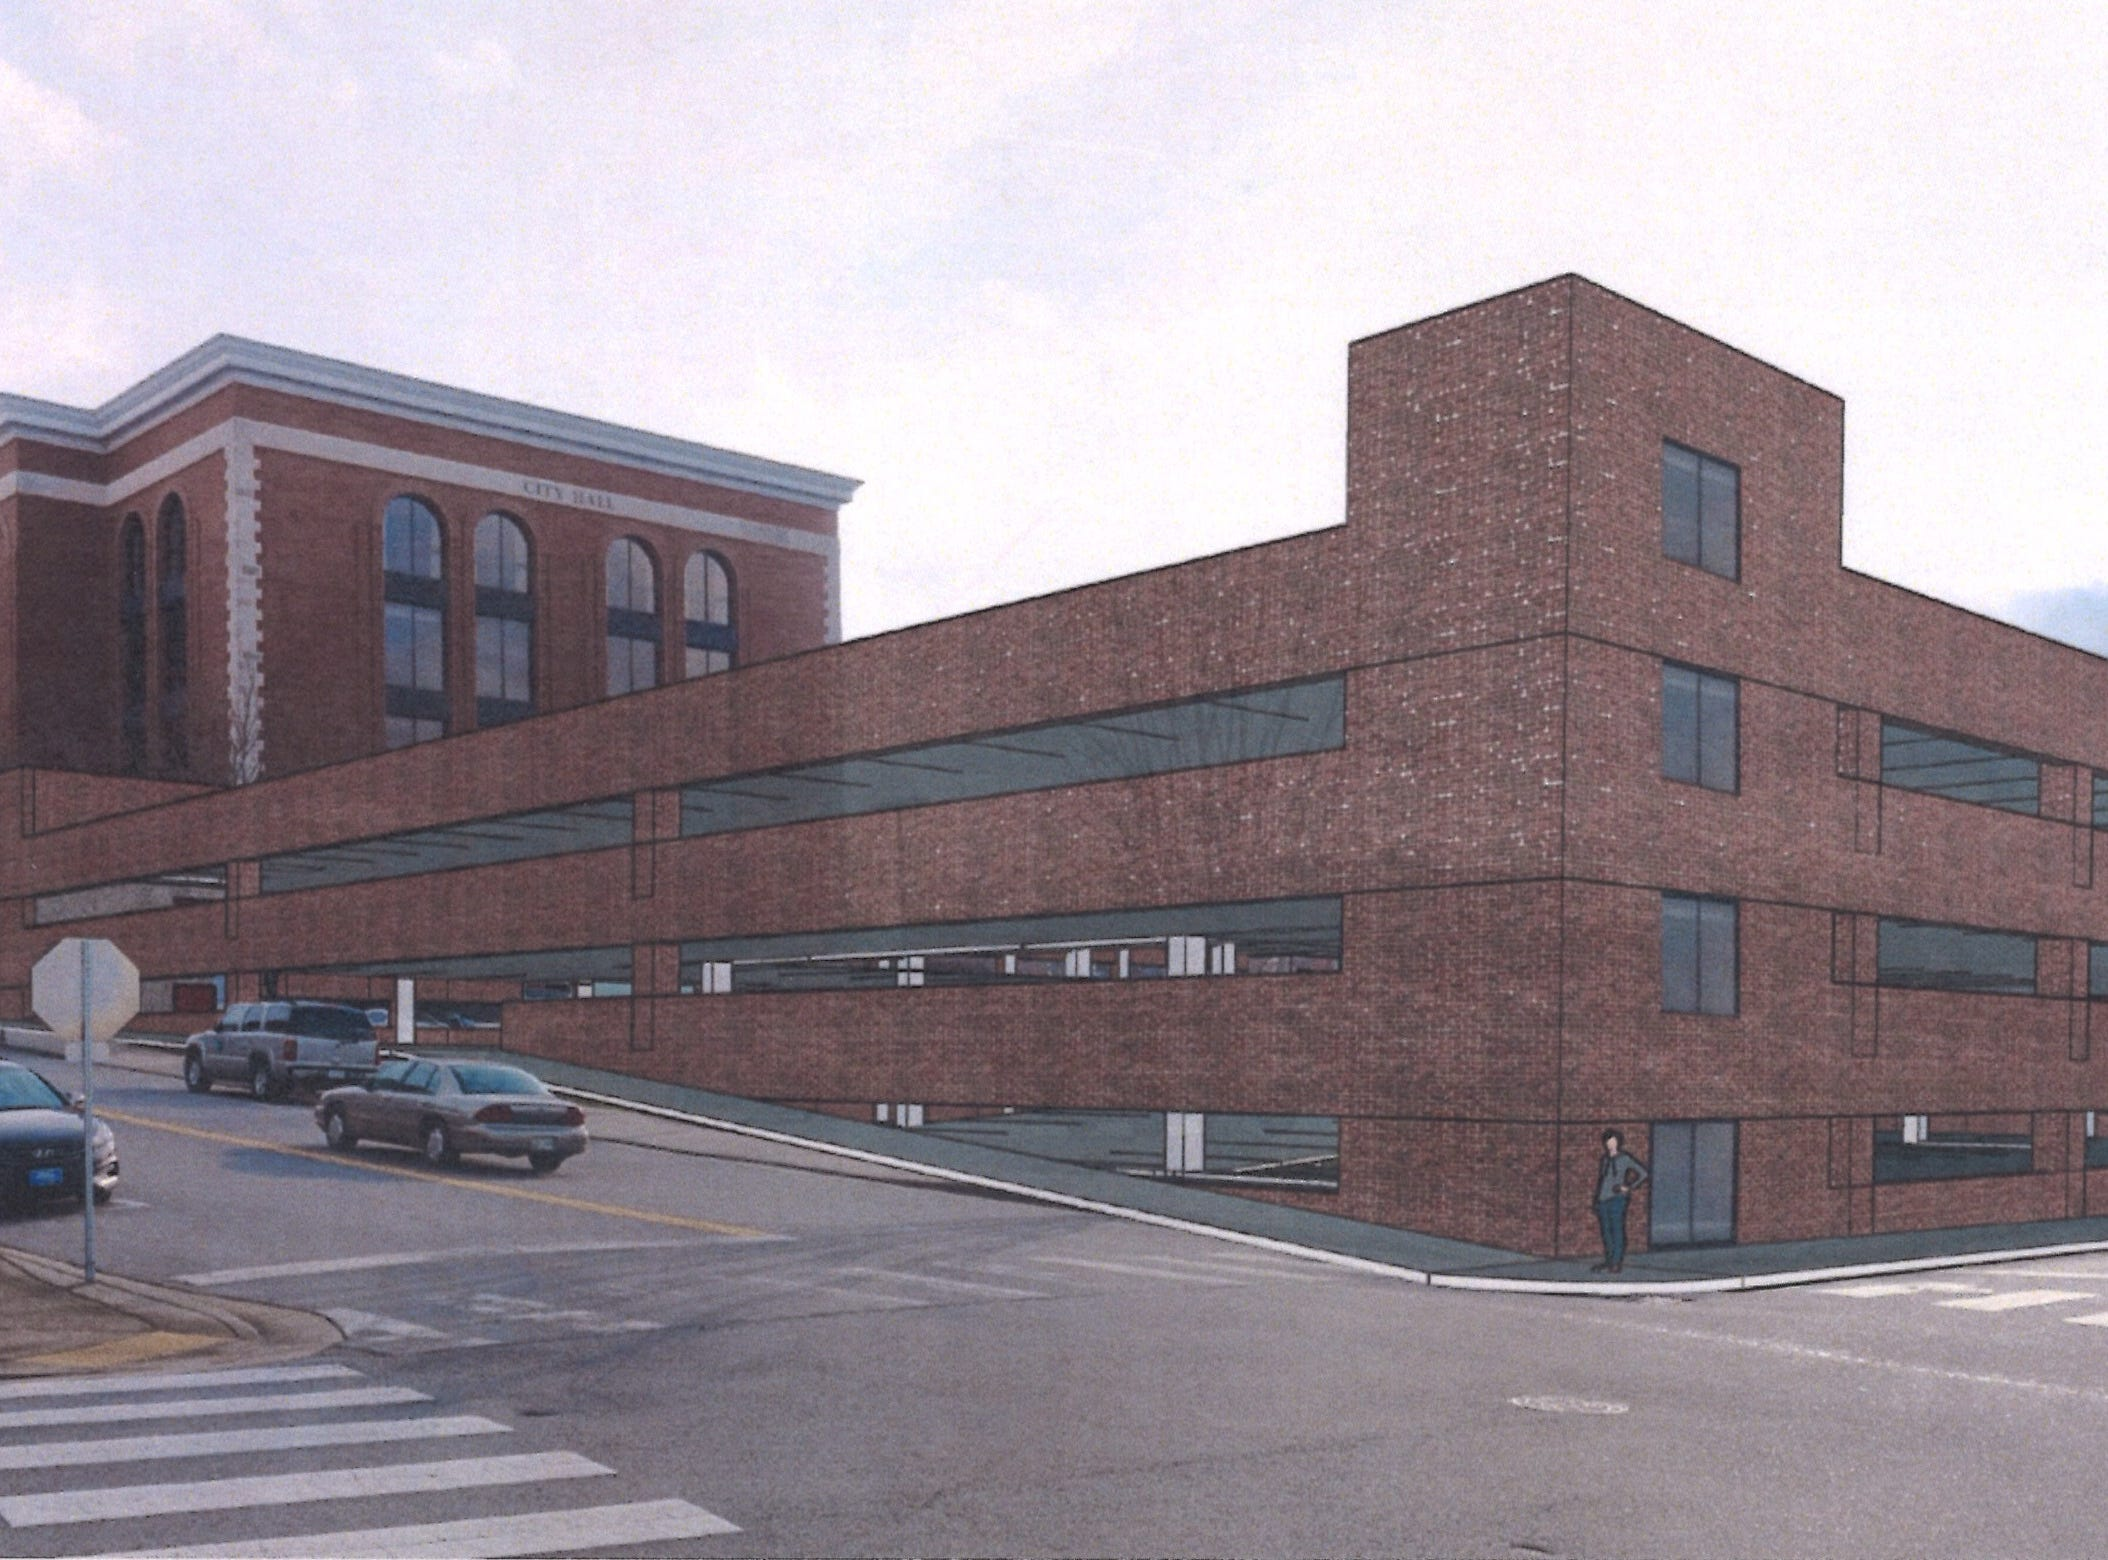 The proposed parking garage planned in downtown Clarksville, by Convergence Design/Rufus Johnson Associates.